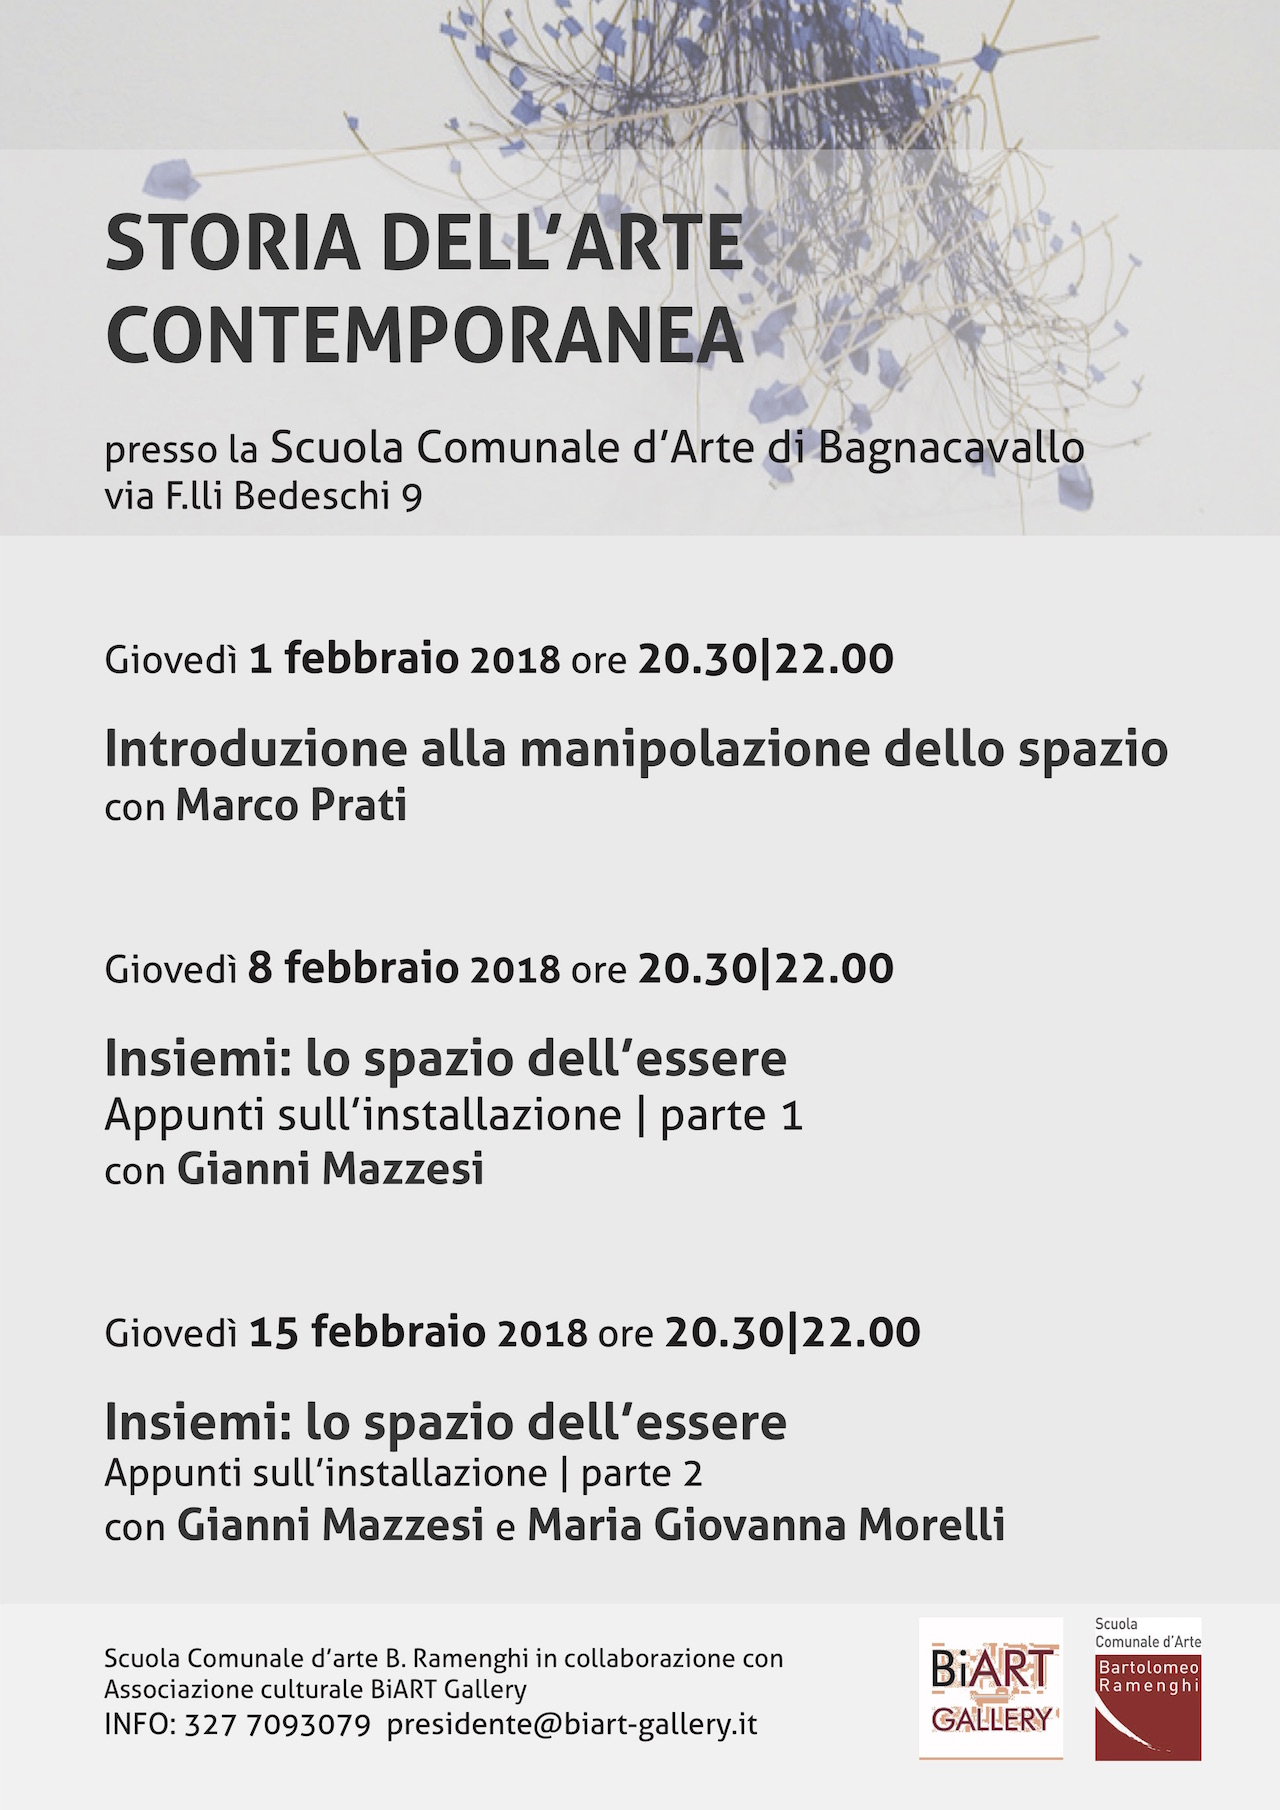 STORIA DELL'ARTE CONTEMPORANEA | 2018